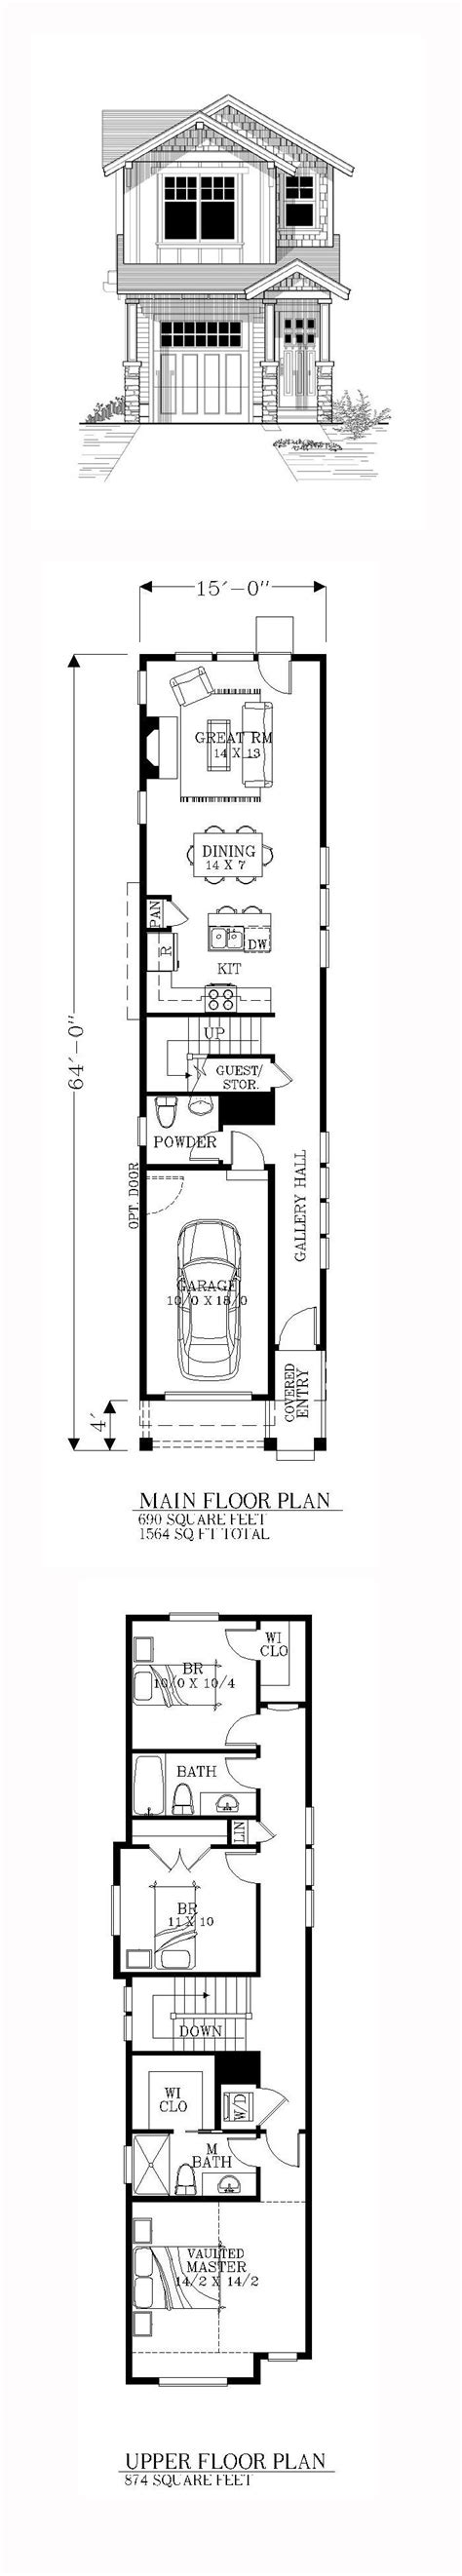 skinny house plans 17 best ideas about narrow bedroom on pinterest narrow bedroom ideas small space